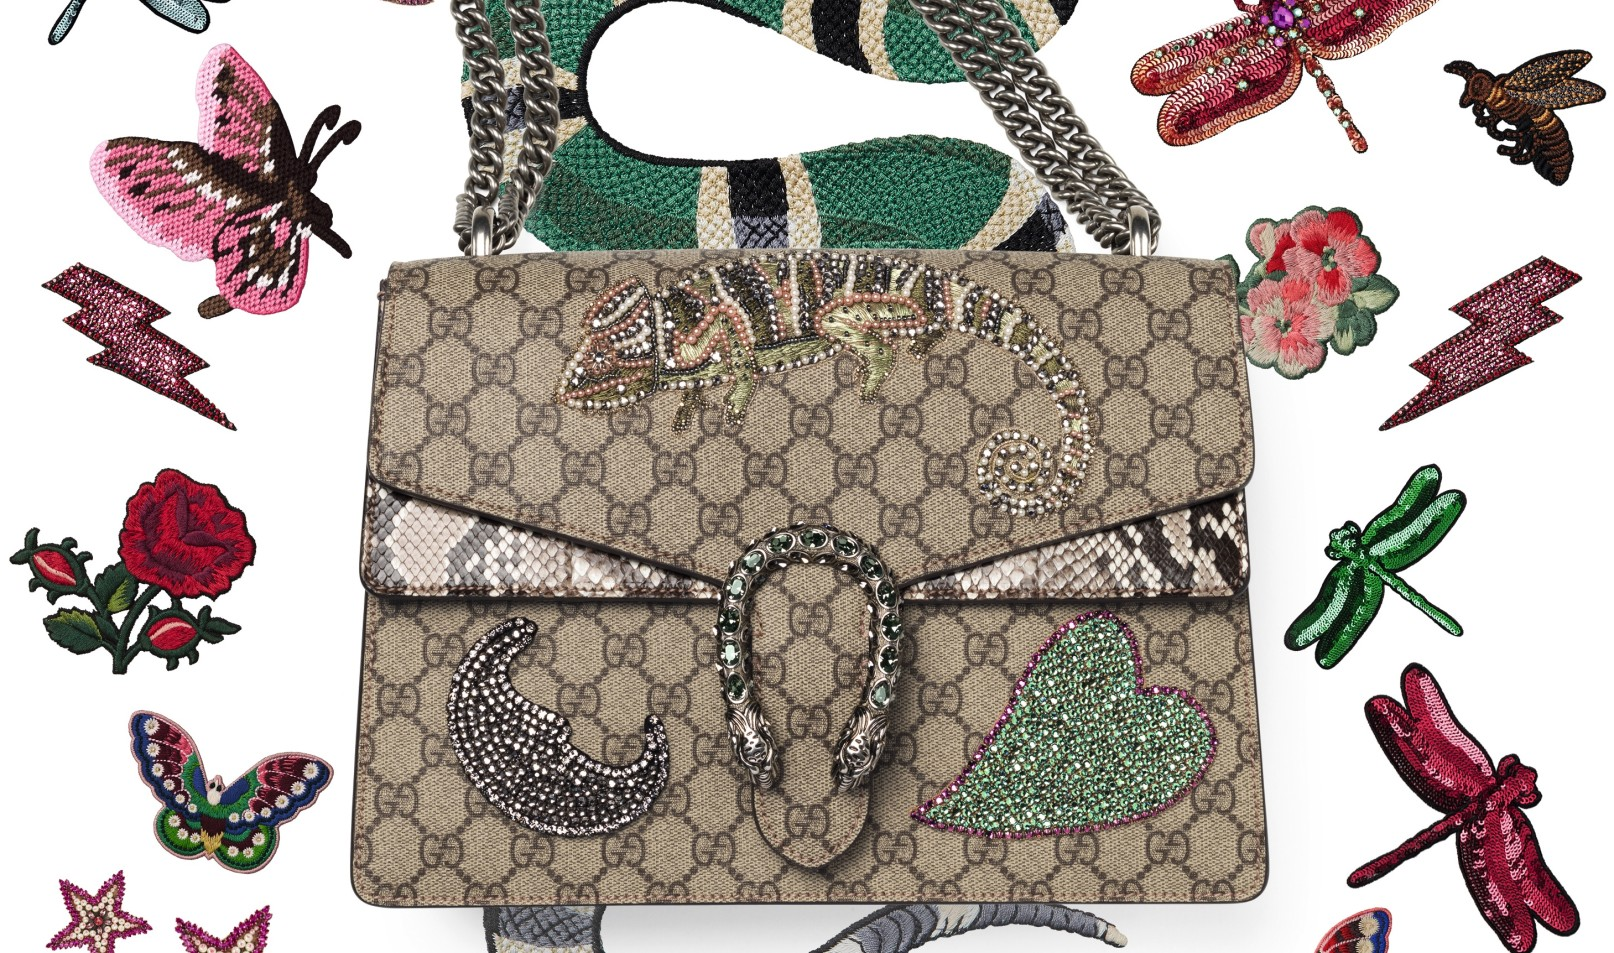 bbdee8824948ff Check out where you can design your own Gucci handbag | Envelope